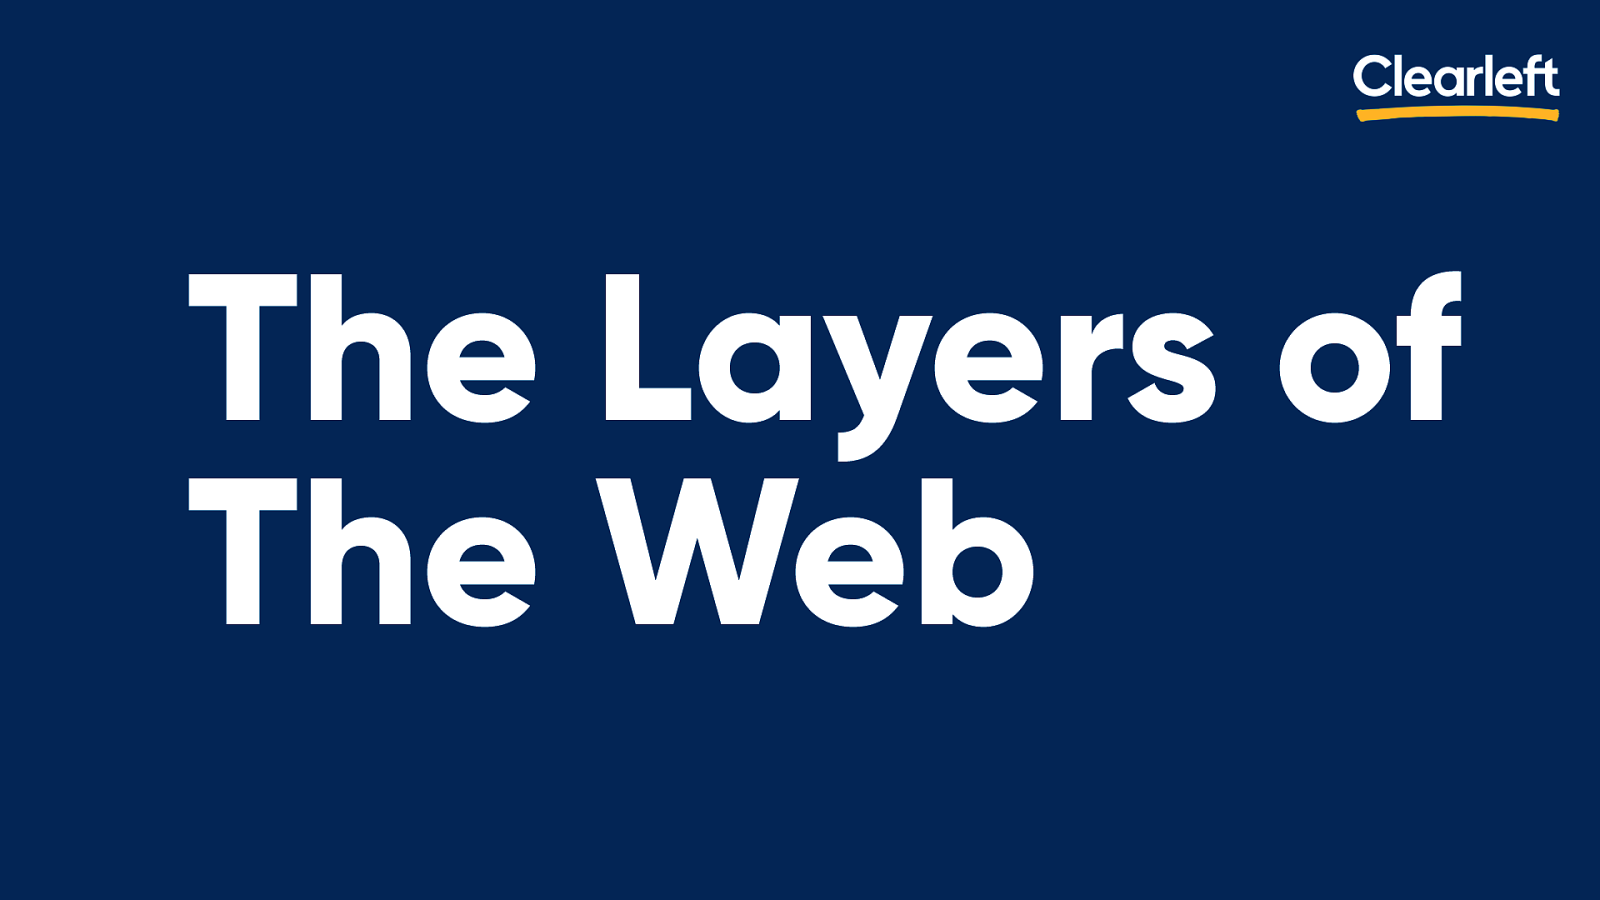 The Layers Of The Web